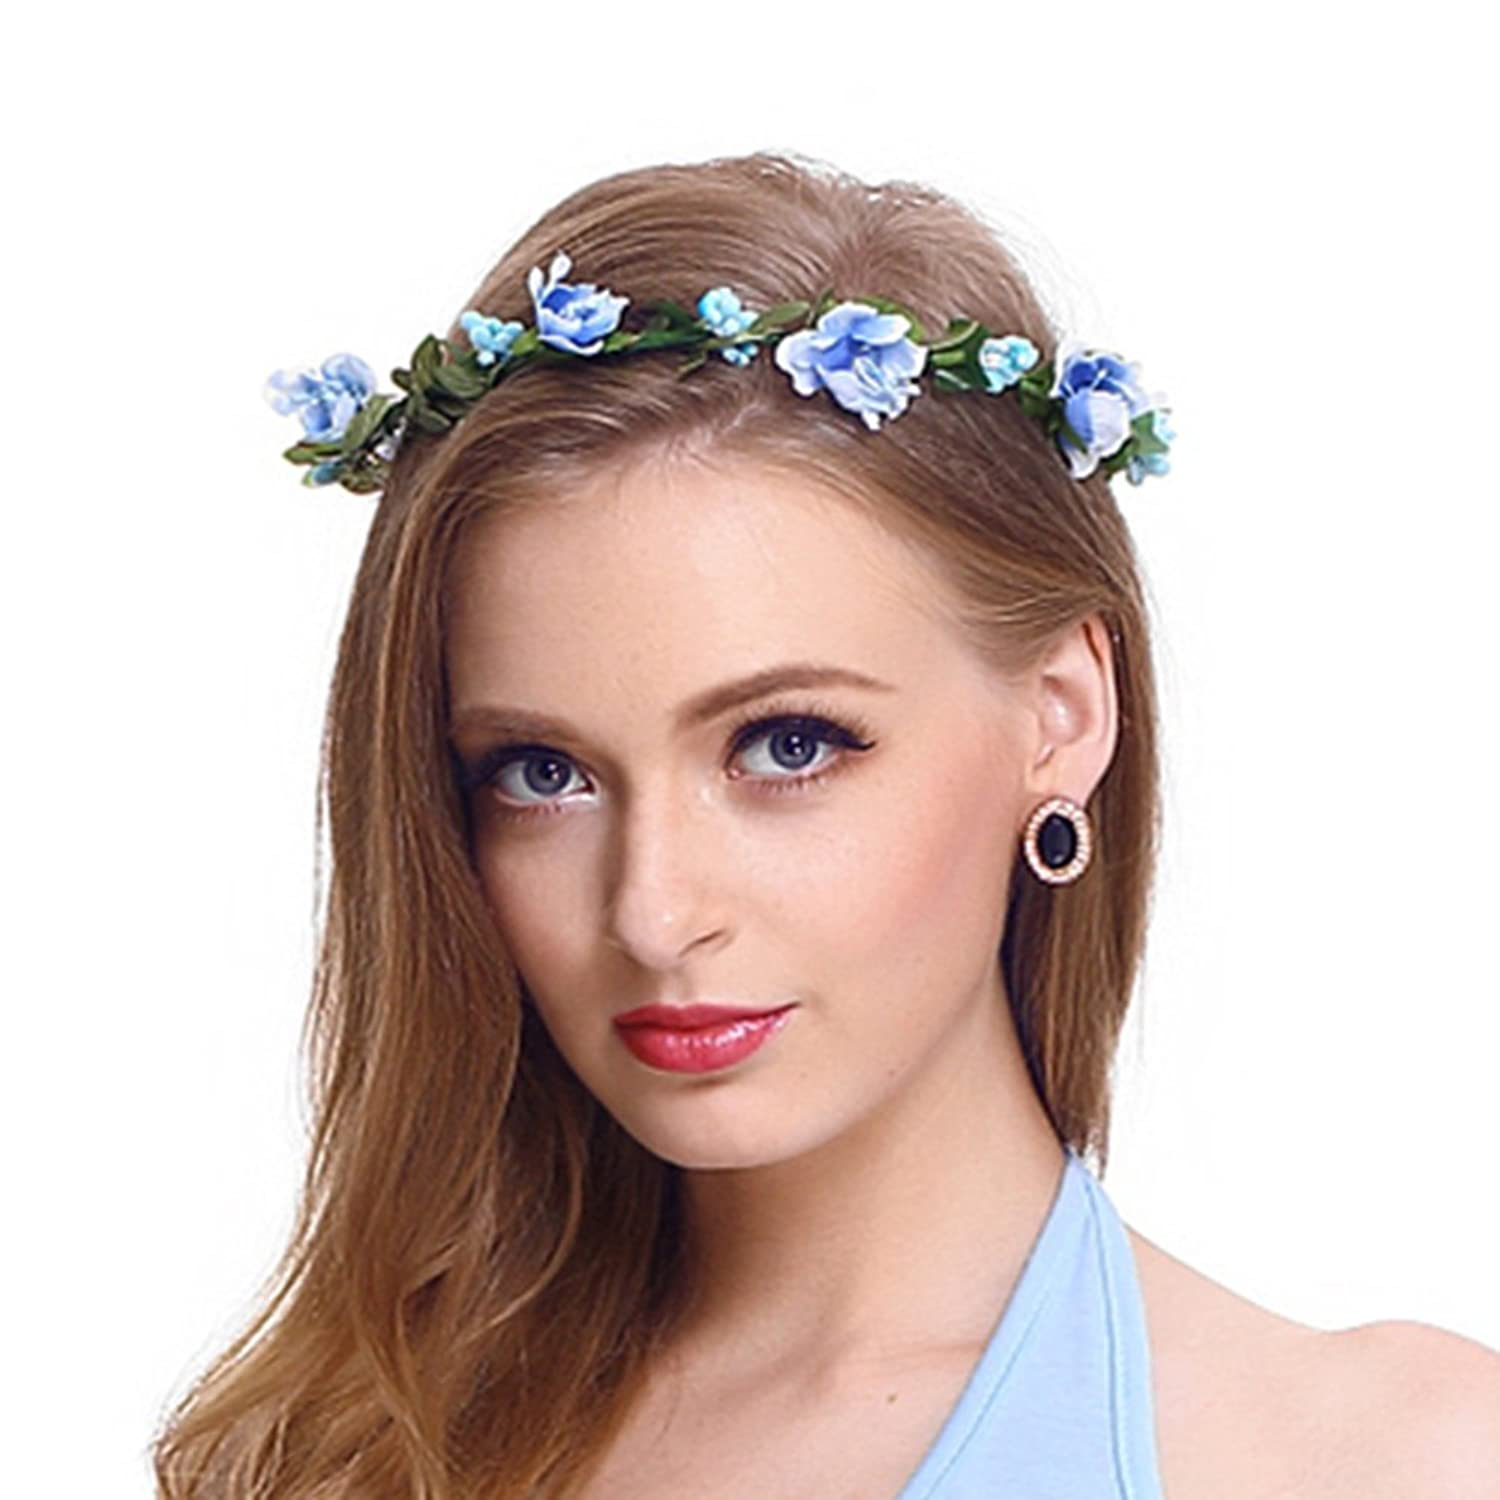 Flower headband garland crown festival wedding hair wreath boho flower headband garland crown festival wedding hair wreath boho floral headband blue 01 at amazon womens clothing store izmirmasajfo